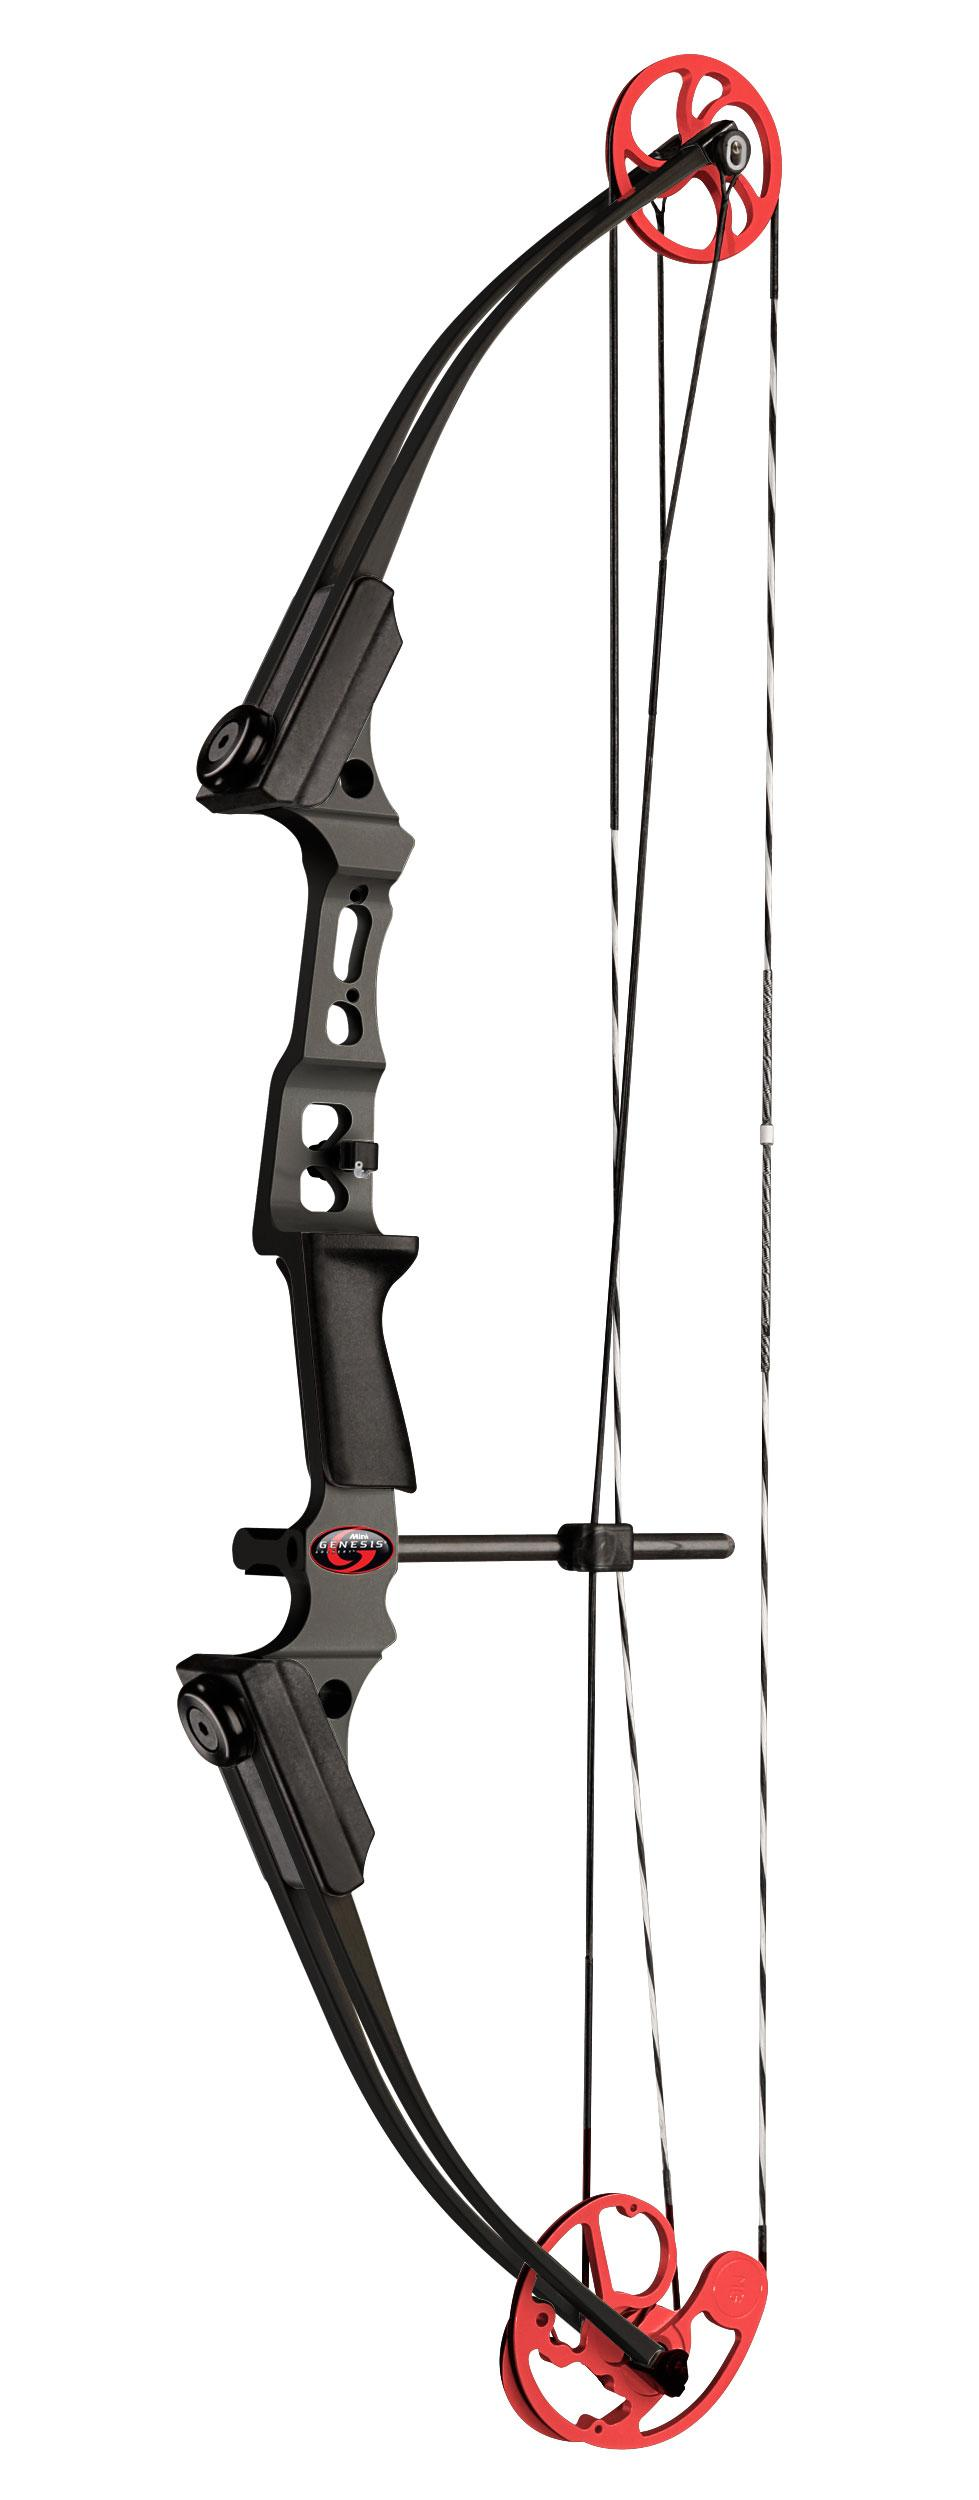 Mathews Mini Genesis compound bow Black Archery Supplies